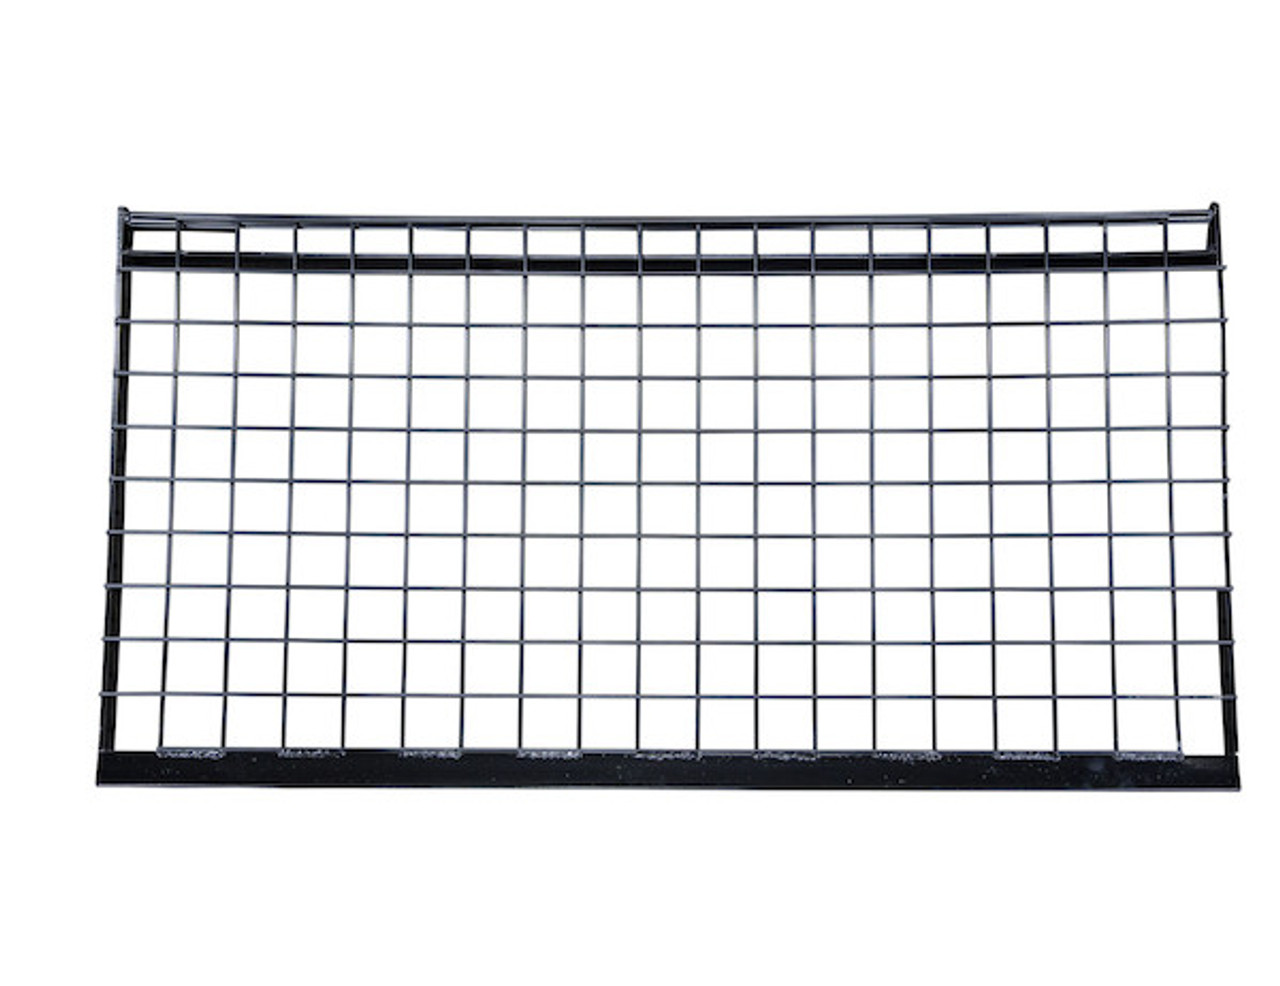 3009206 BUYERS SaltDogg Replacement 10 Foot Welded Top Screen For 1400550SS 1400550SSH 1470550SSE 1470550SSH 1470560SSE 1470560SSH SALTDOGG Spreaders